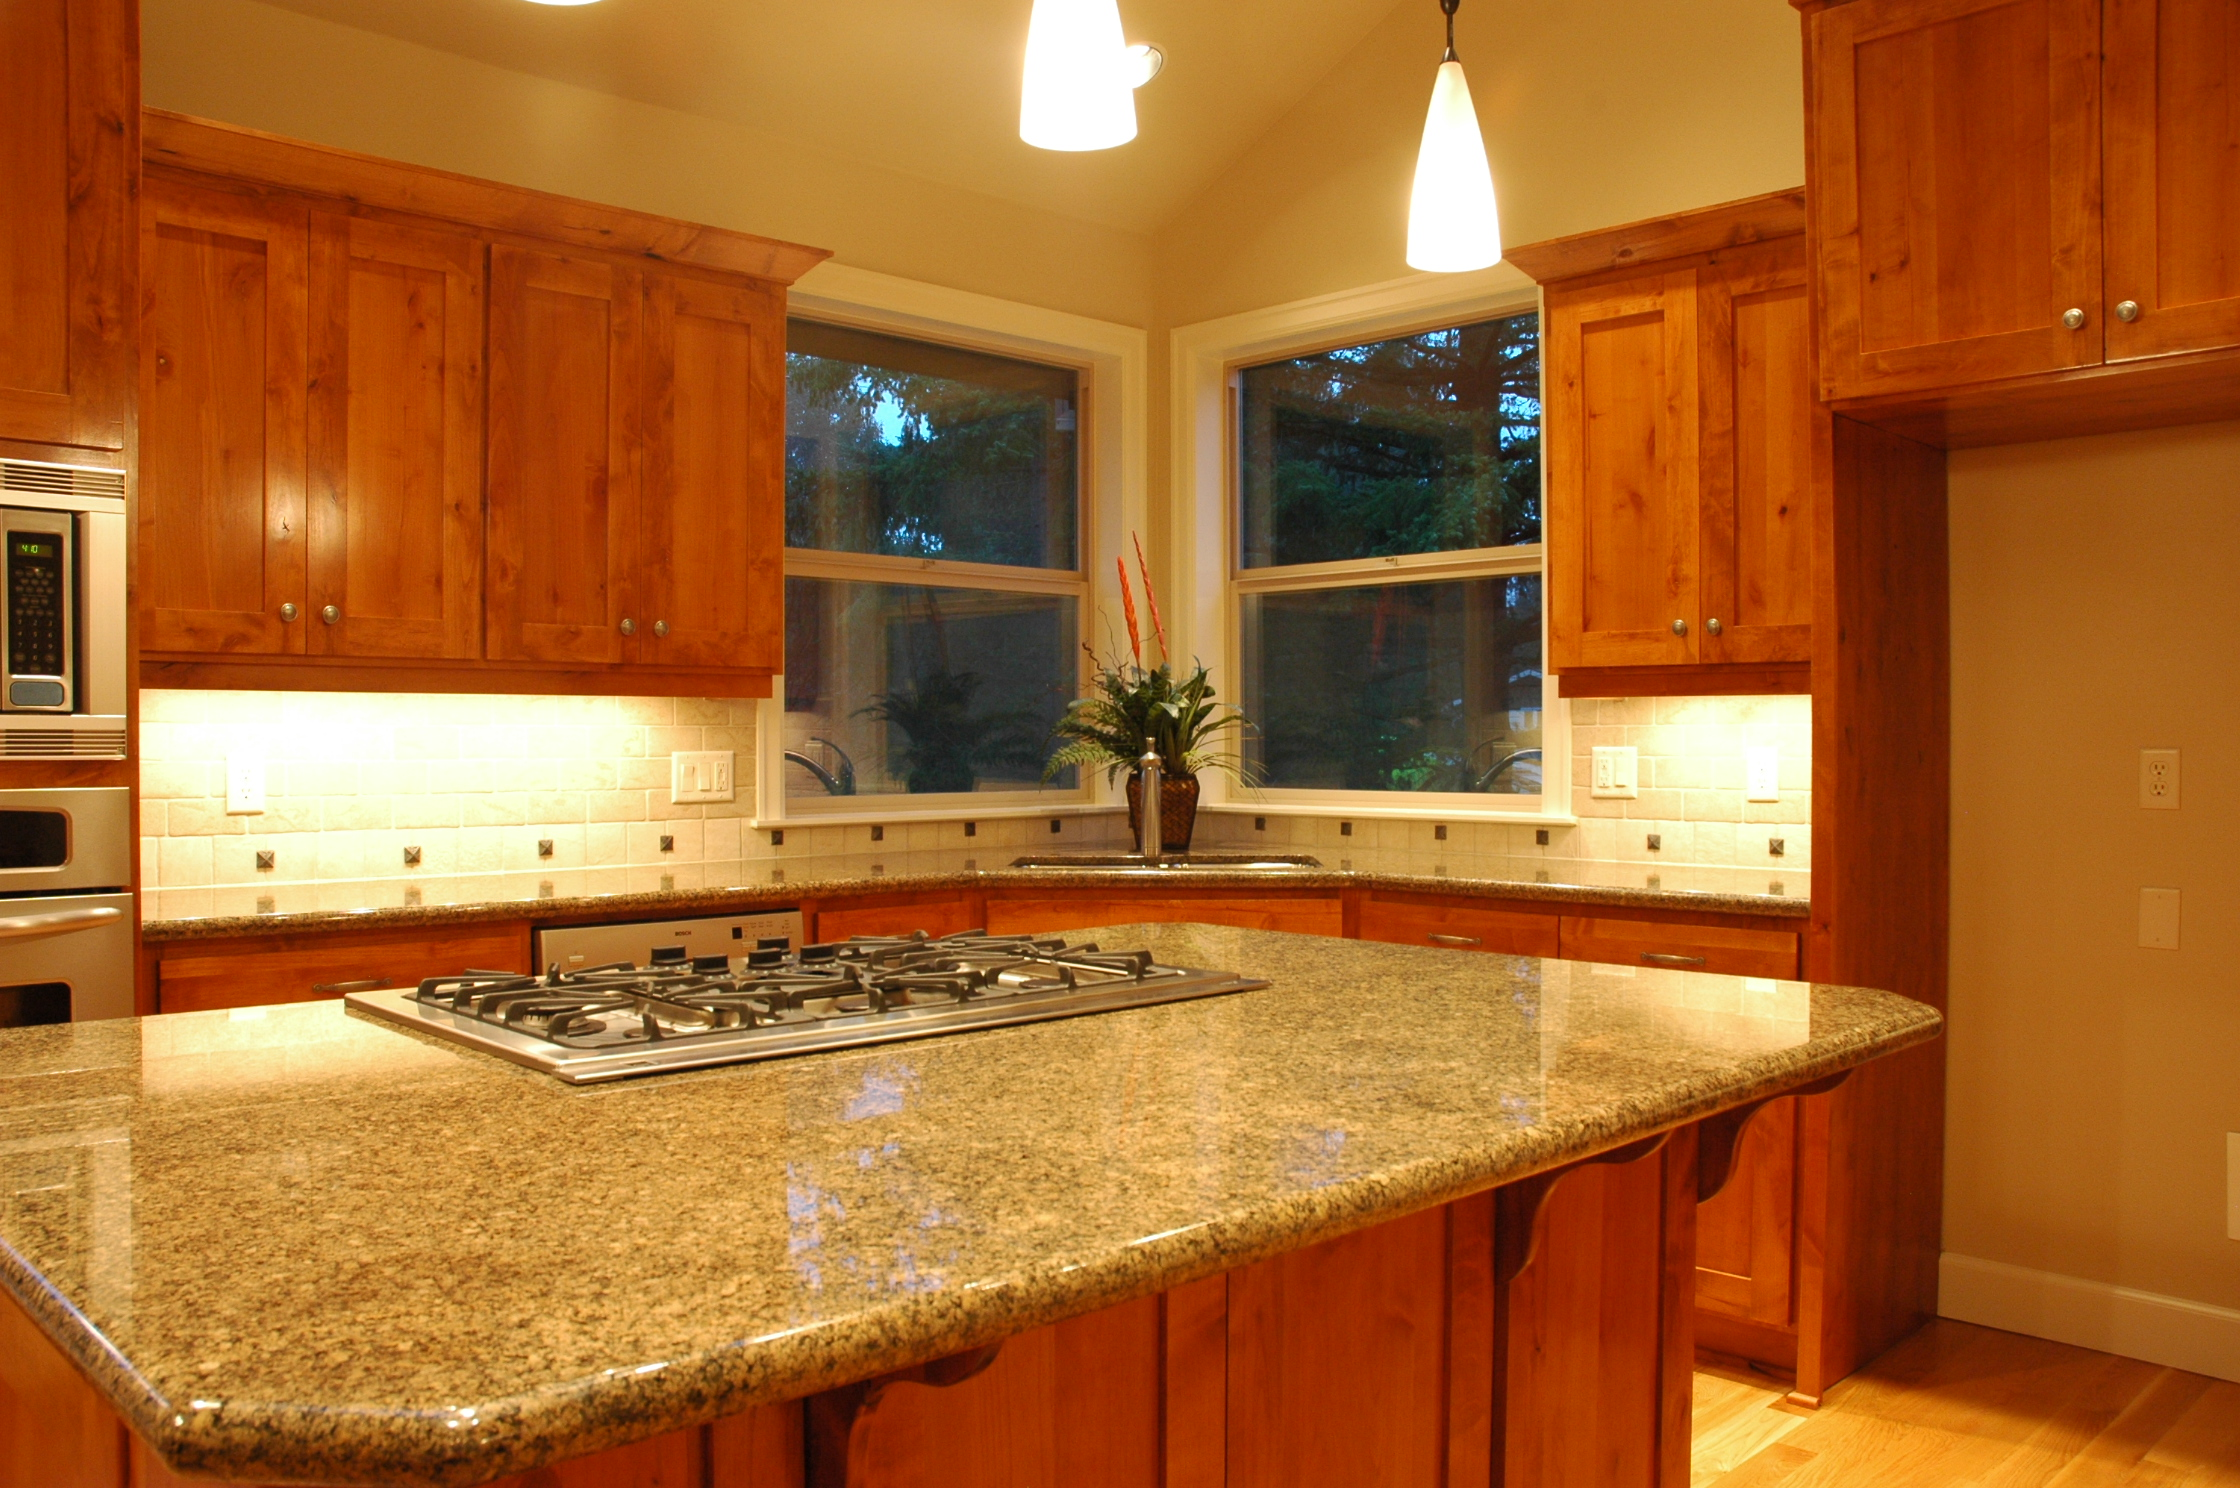 Kitchen Island and Sink